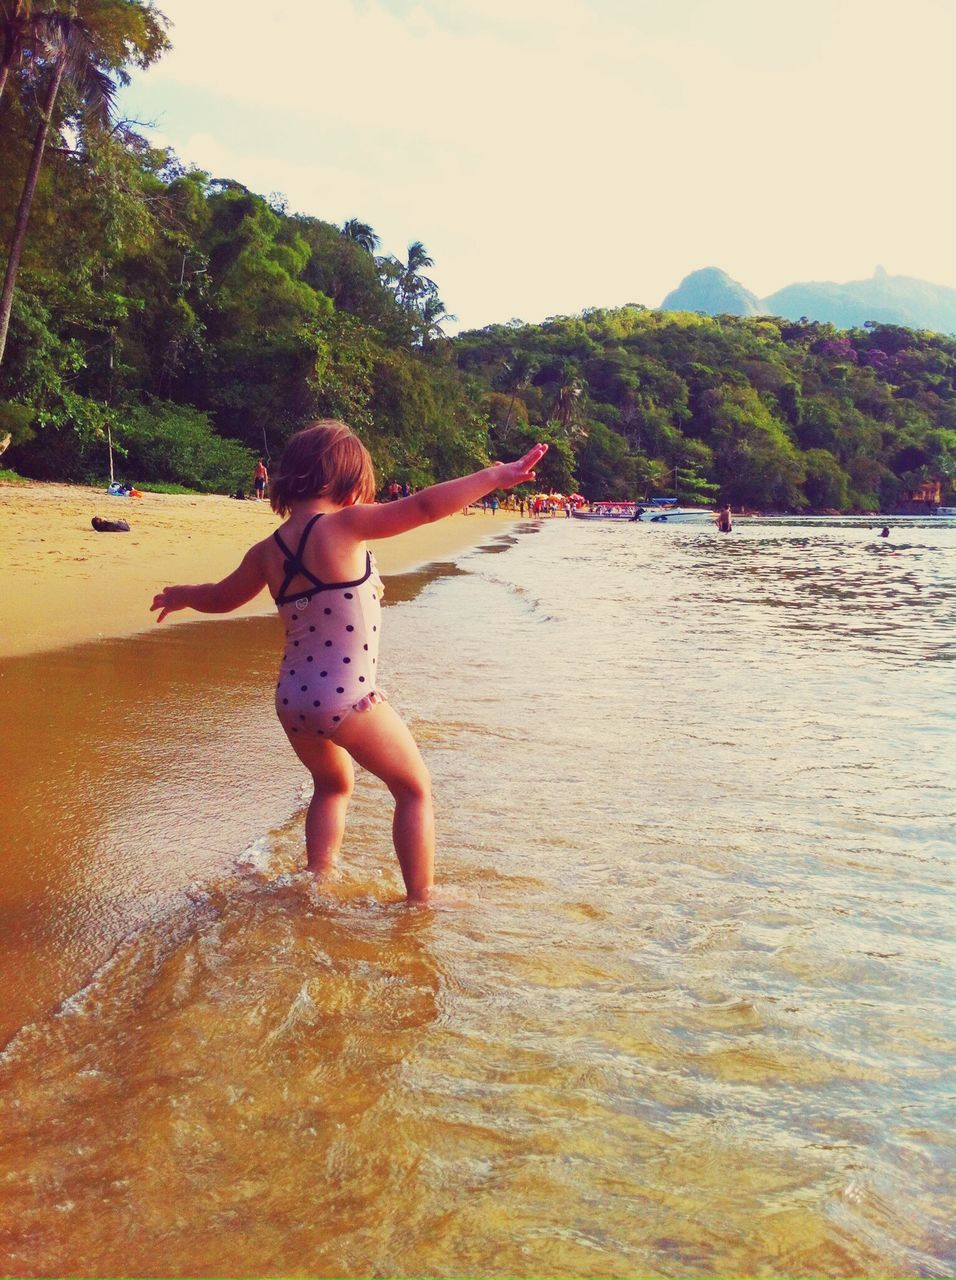 Rear View Of Girl With Arms Outstretched At Shore